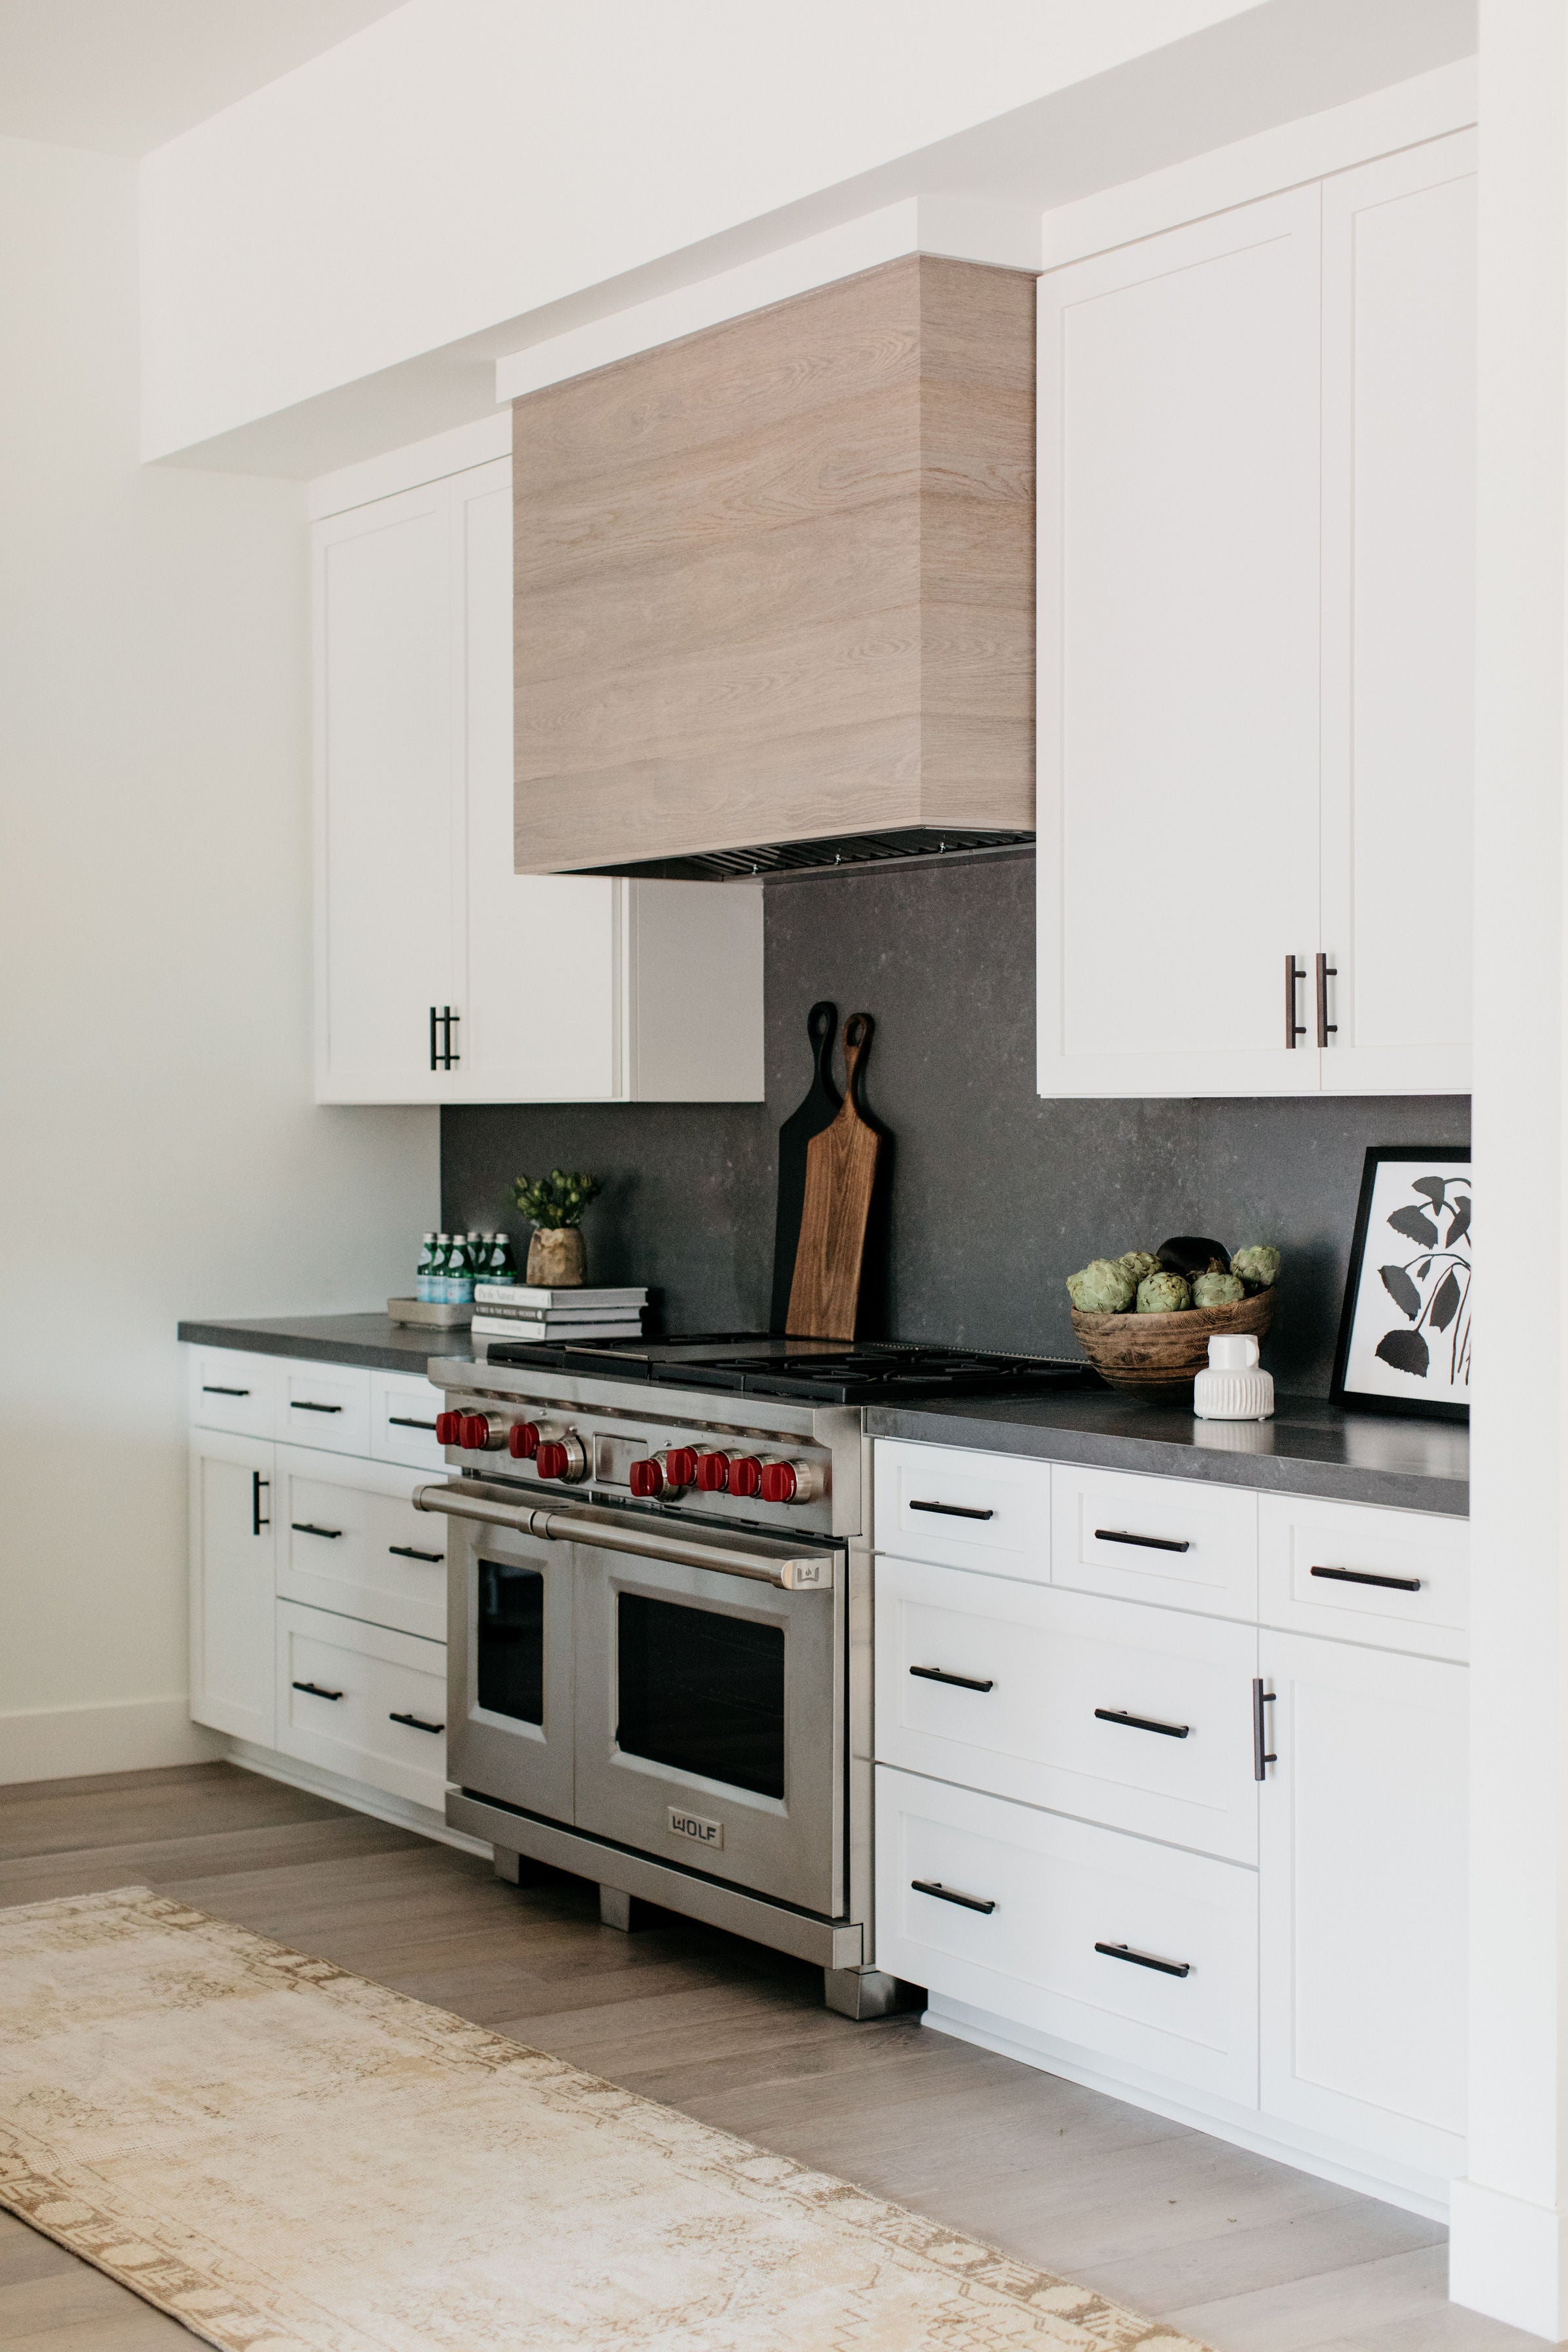 Albion project greige design shop + interiors Point Loma San Diego California black and white kitchen interior design